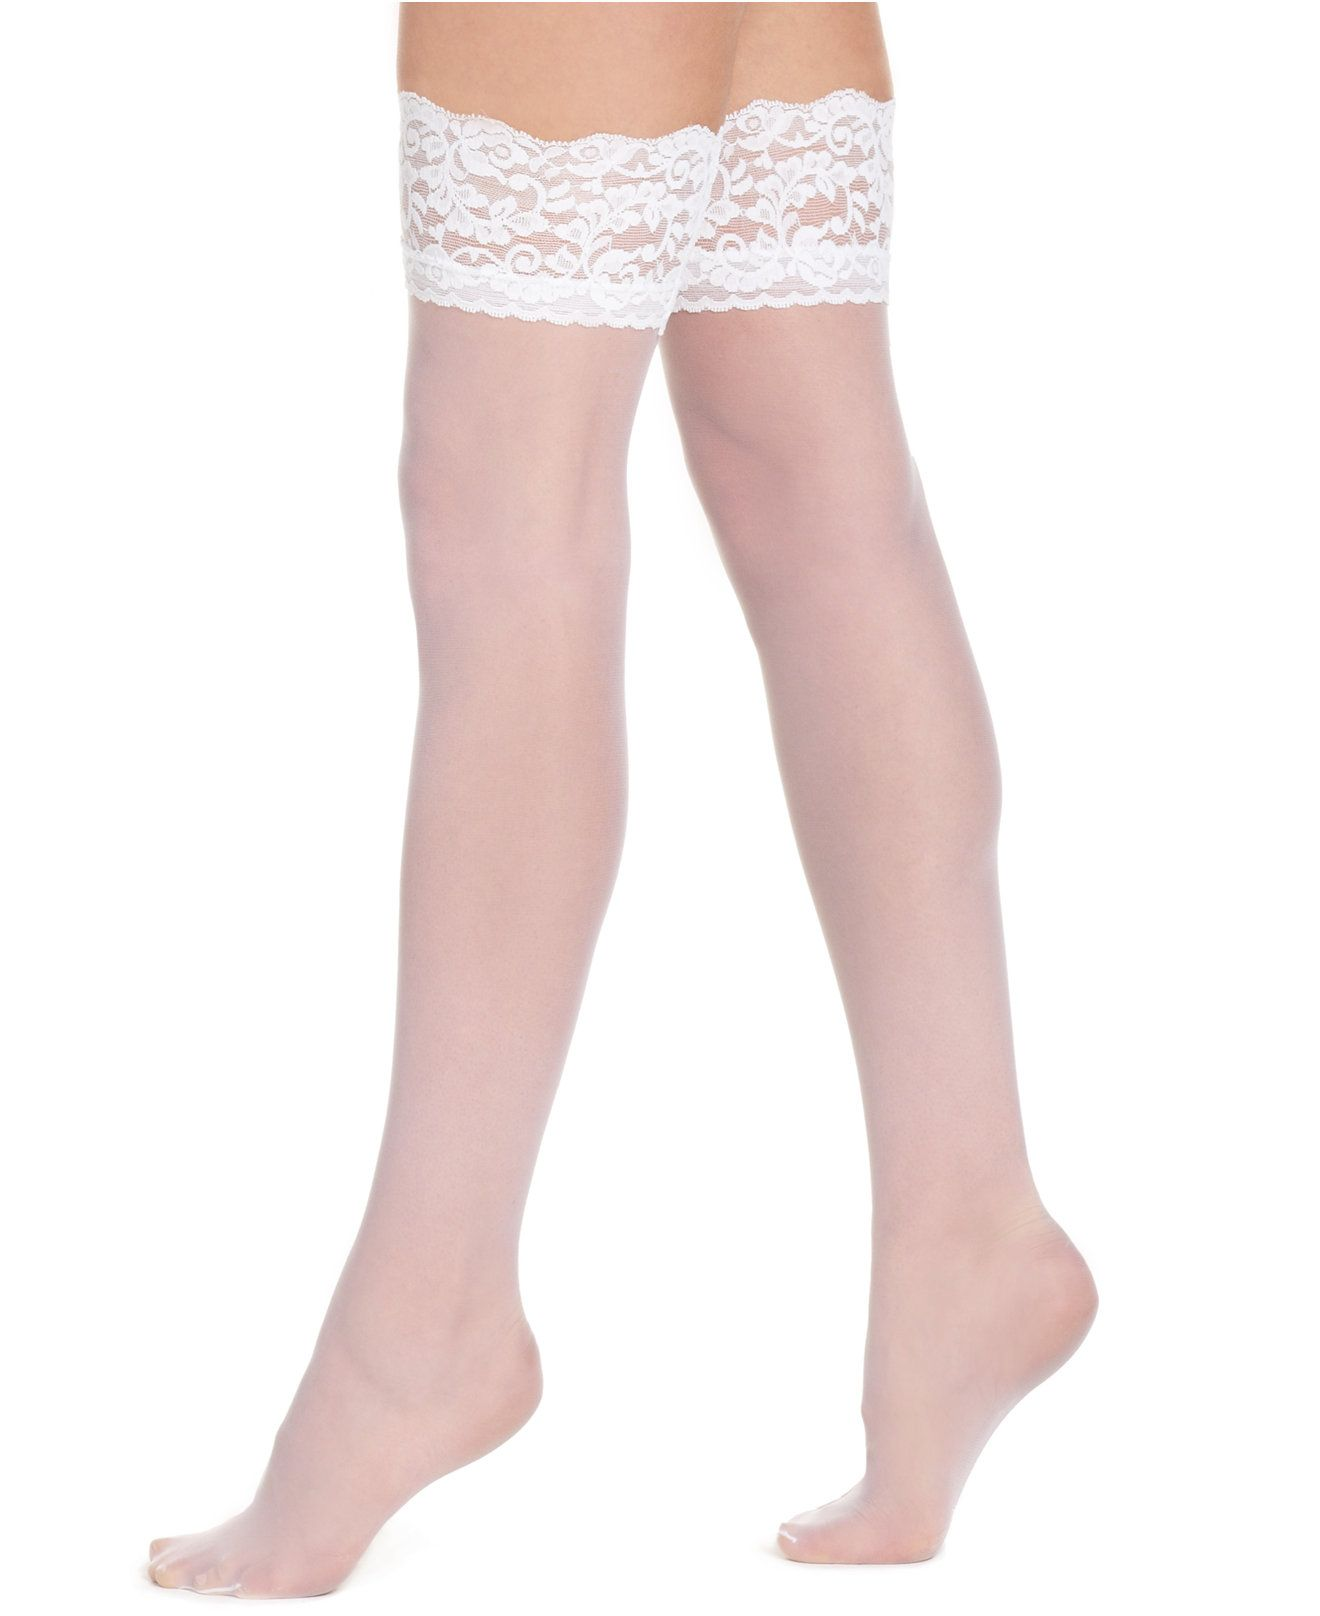 Women\'s French Lace Top Thigh High Hosiery 1363 | Pinterest | Medias